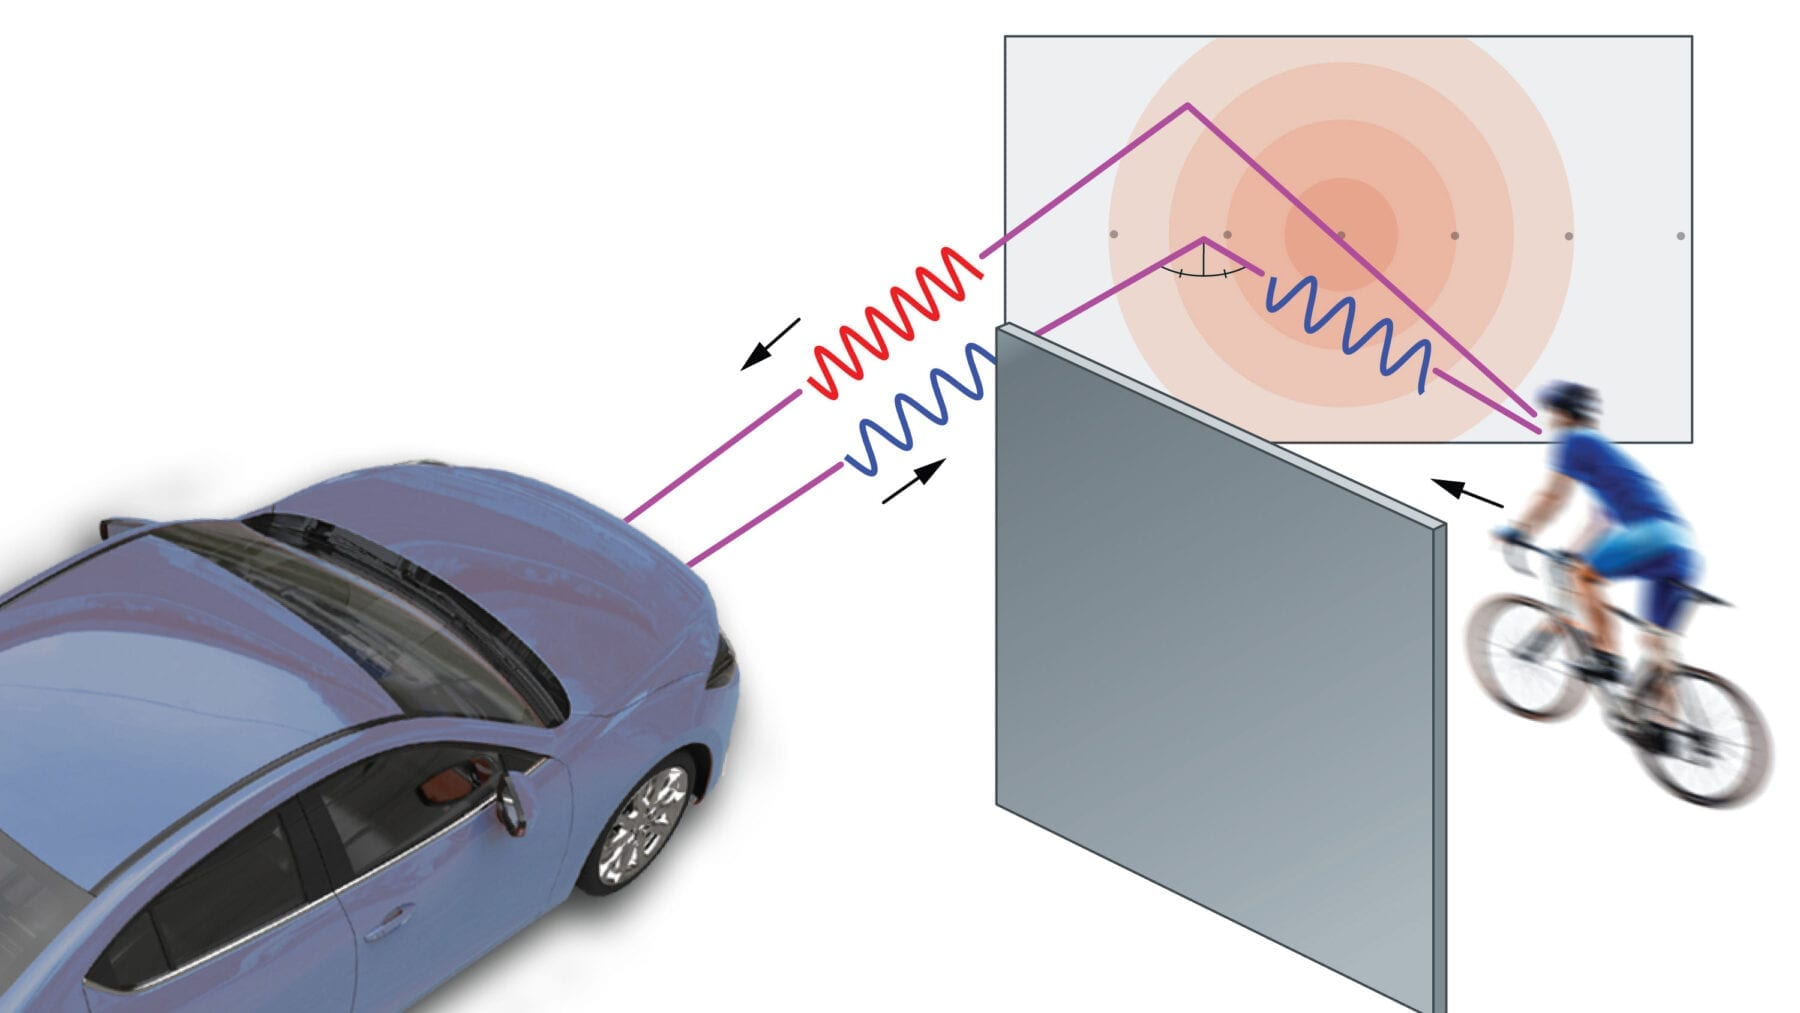 Researchers combined artificial intelligence and radar used to track speeders to develop a system that will allow vehicles to spot hazards hidden around corners. Image courtesy of the researchers.